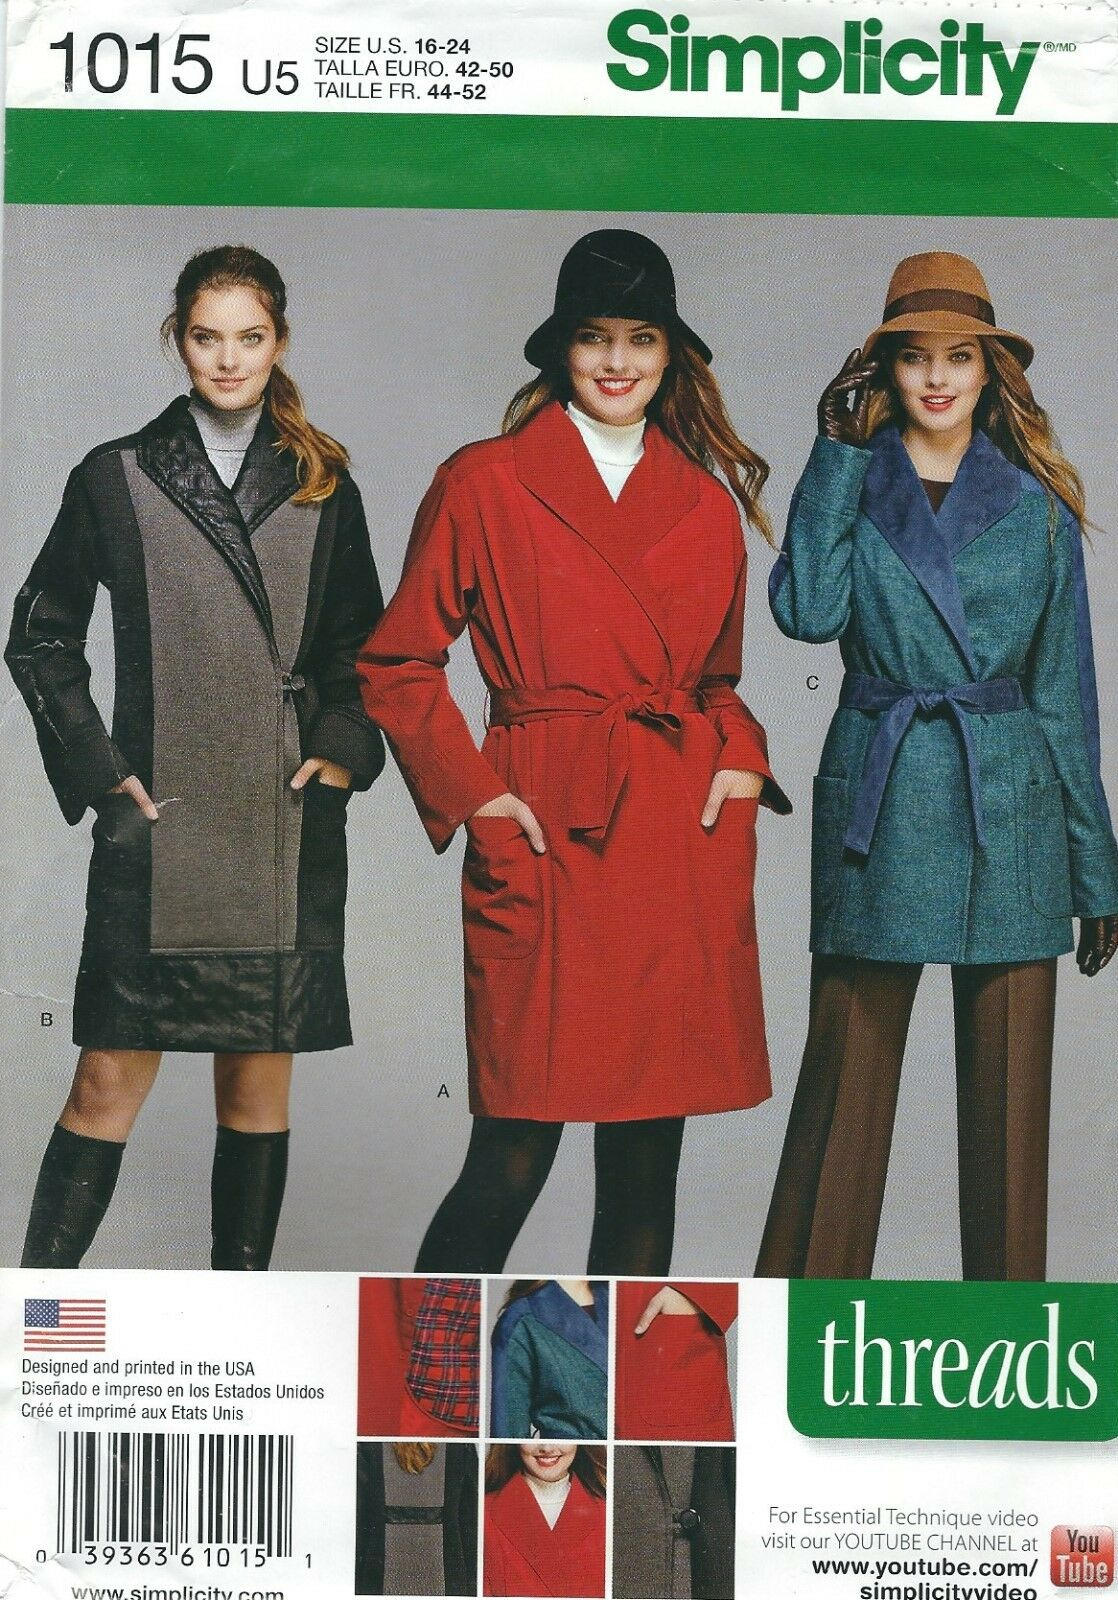 897953bd3e6d1 1015 Simplicity Coat or Jacket Sewing Pattern Sizes 16-24 | eBay